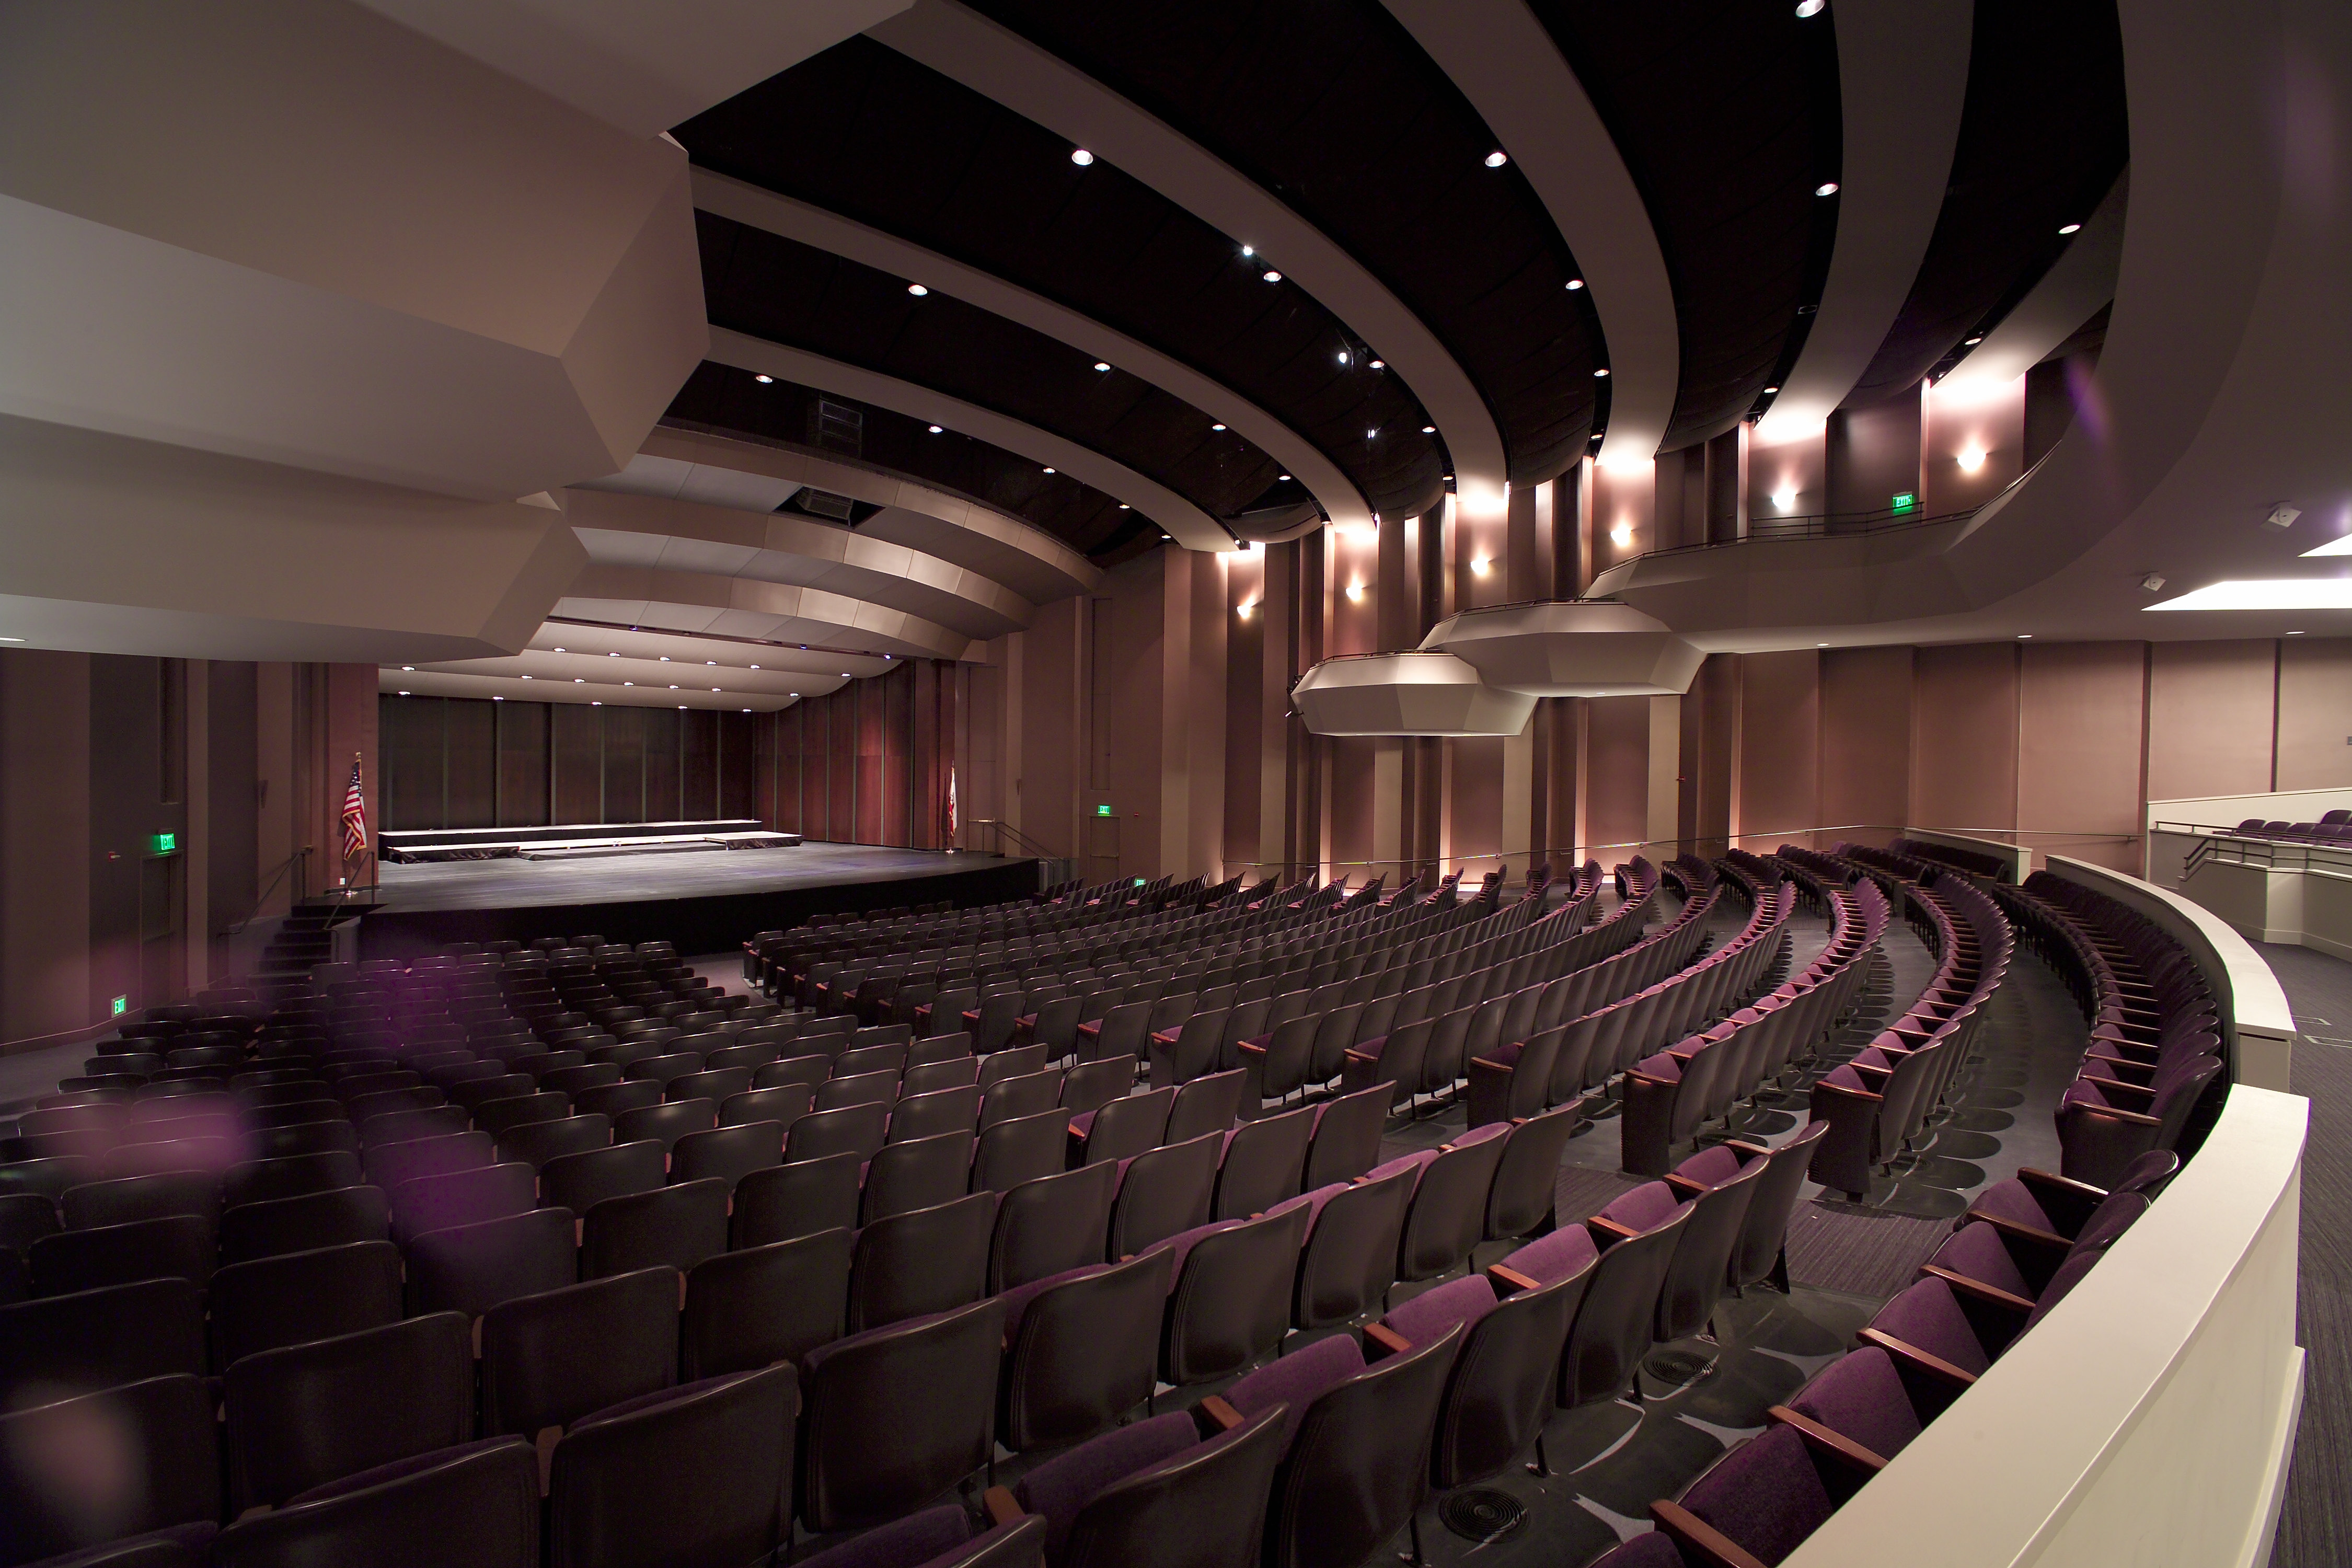 Lincoln Theater event space at Napa Valley Performing Arts Center at Lincoln Theater in New York City, NYC, NY/NJ Area